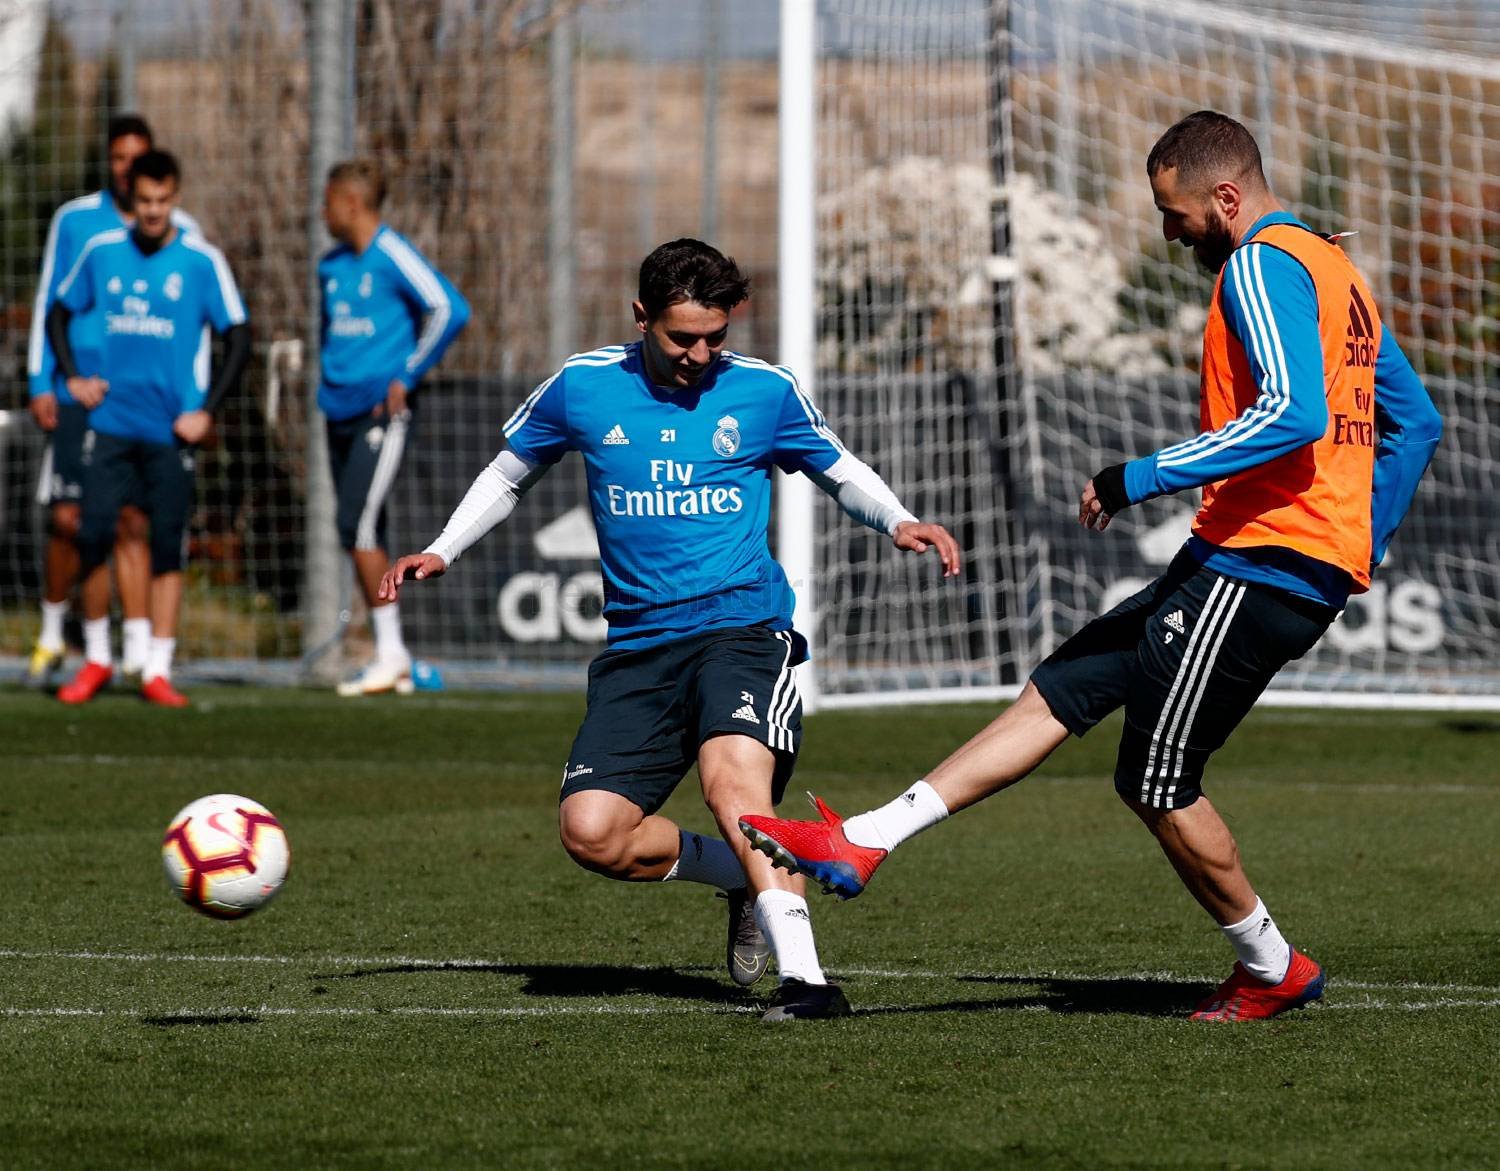 Real Madrid - Entrenamiento del Real Madrid - 14-03-2019